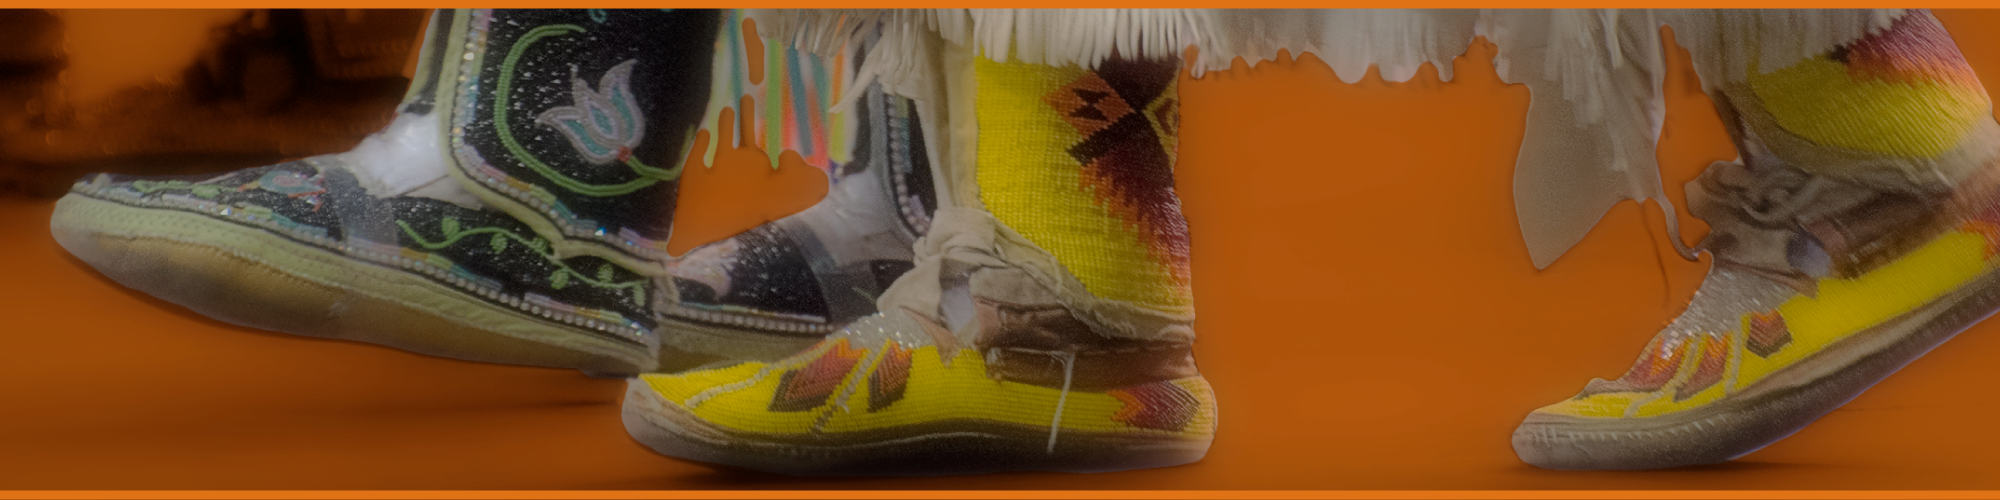 remember me, september 30, orange shirt day, ottawa, pass the feather, indigenous arts collective of canada, residential school, graves, remembrance day, sixties scoop